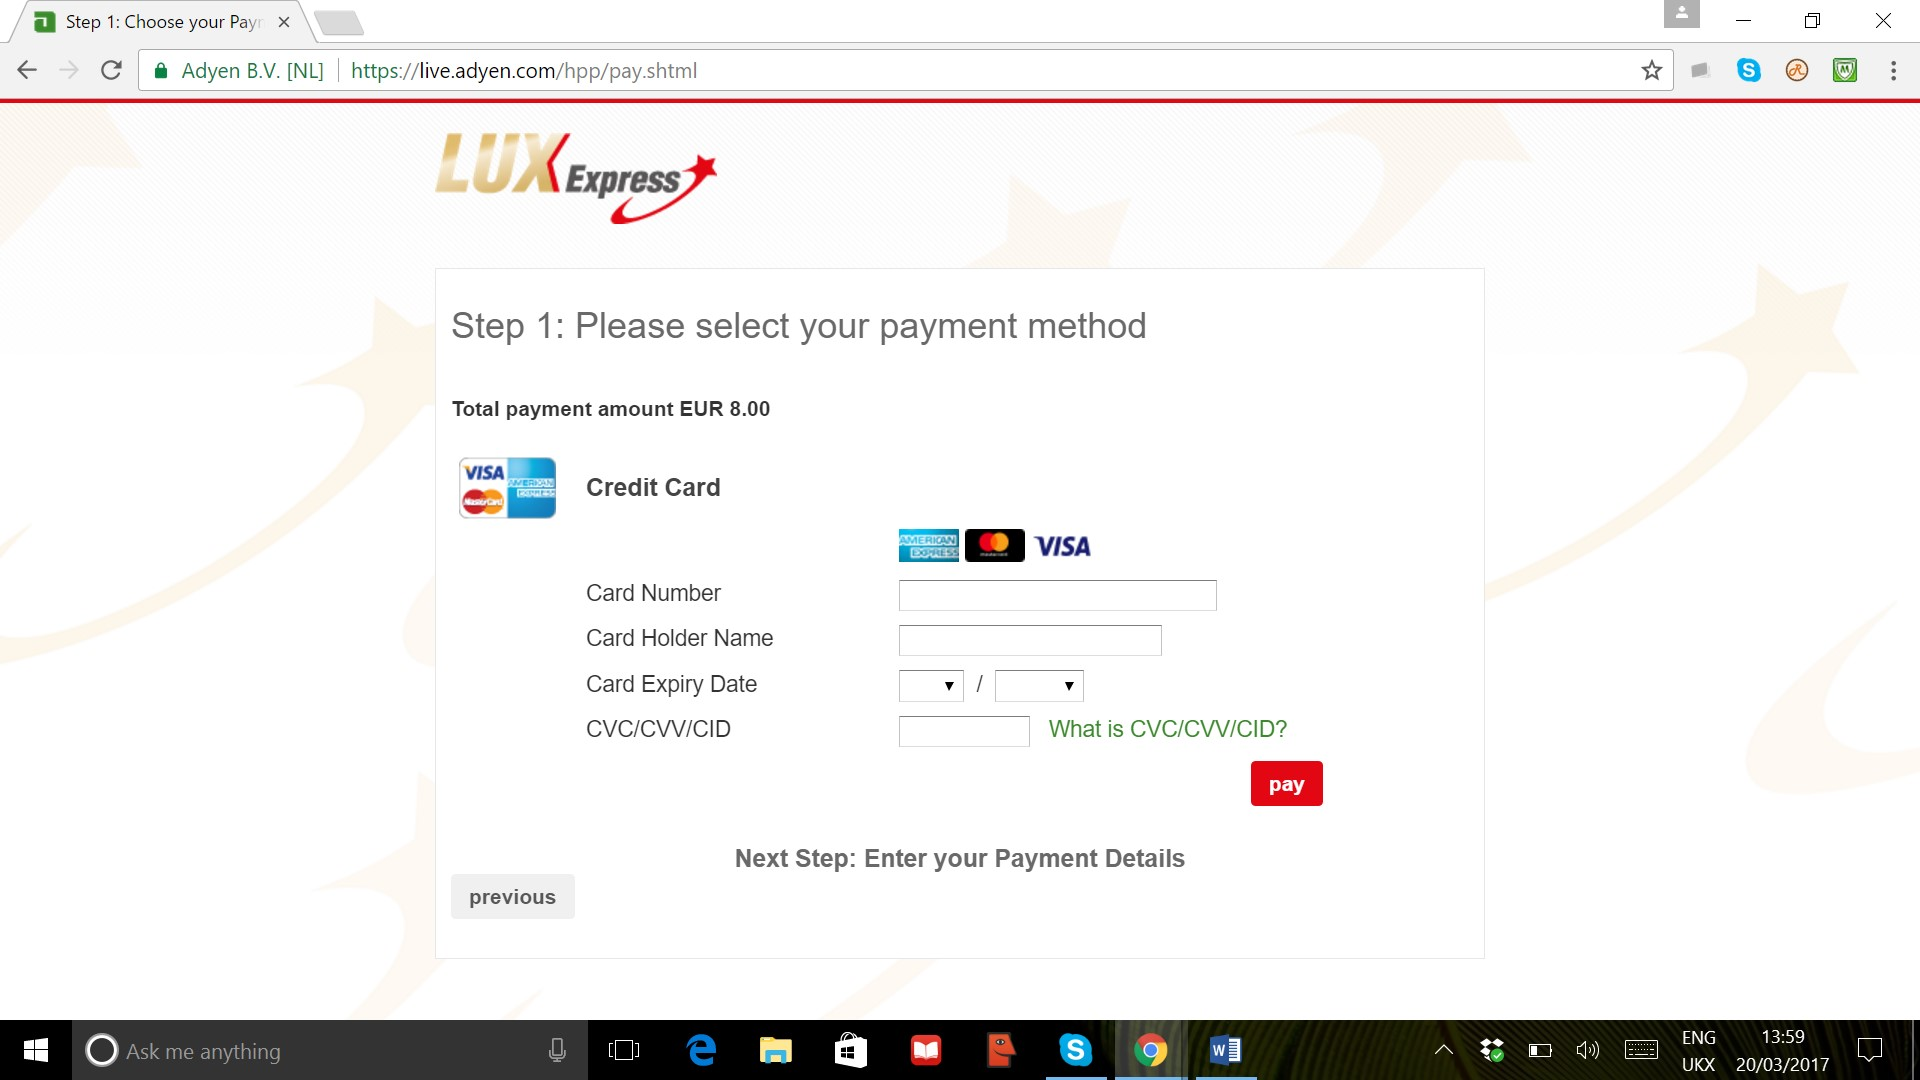 LUX Express Payment Page